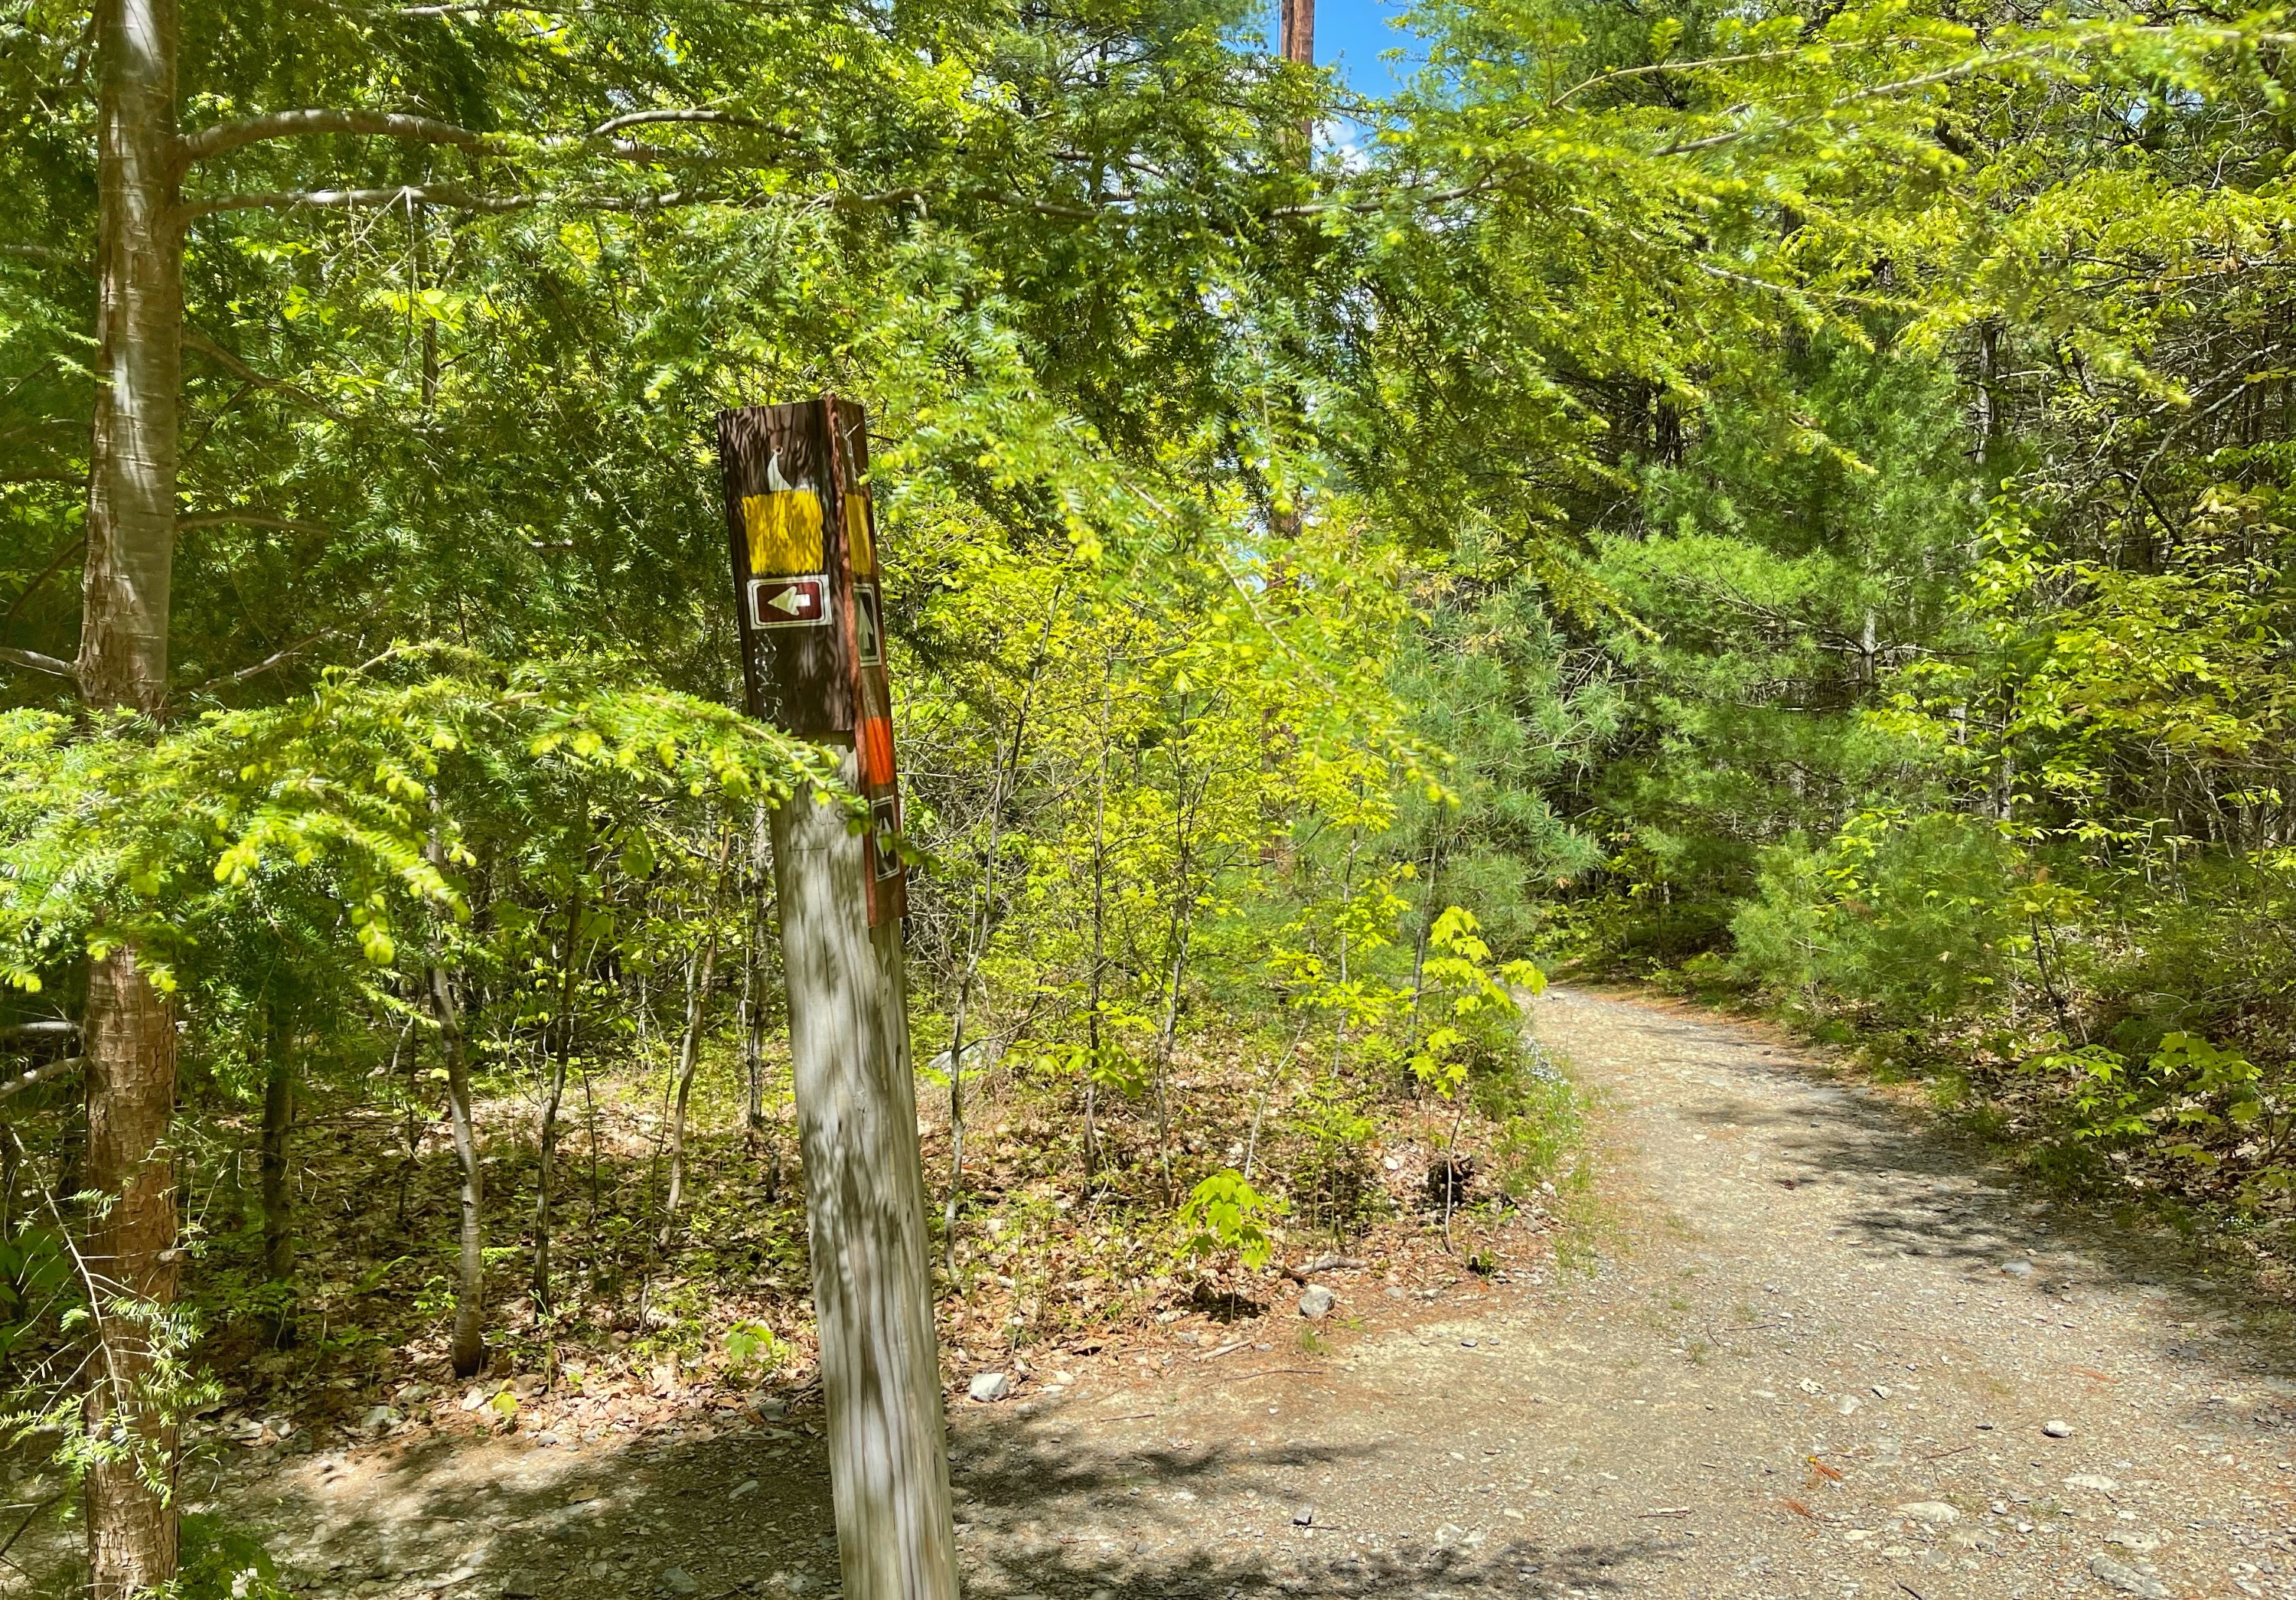 Junction of Buchanan Trail and Hackers Trail